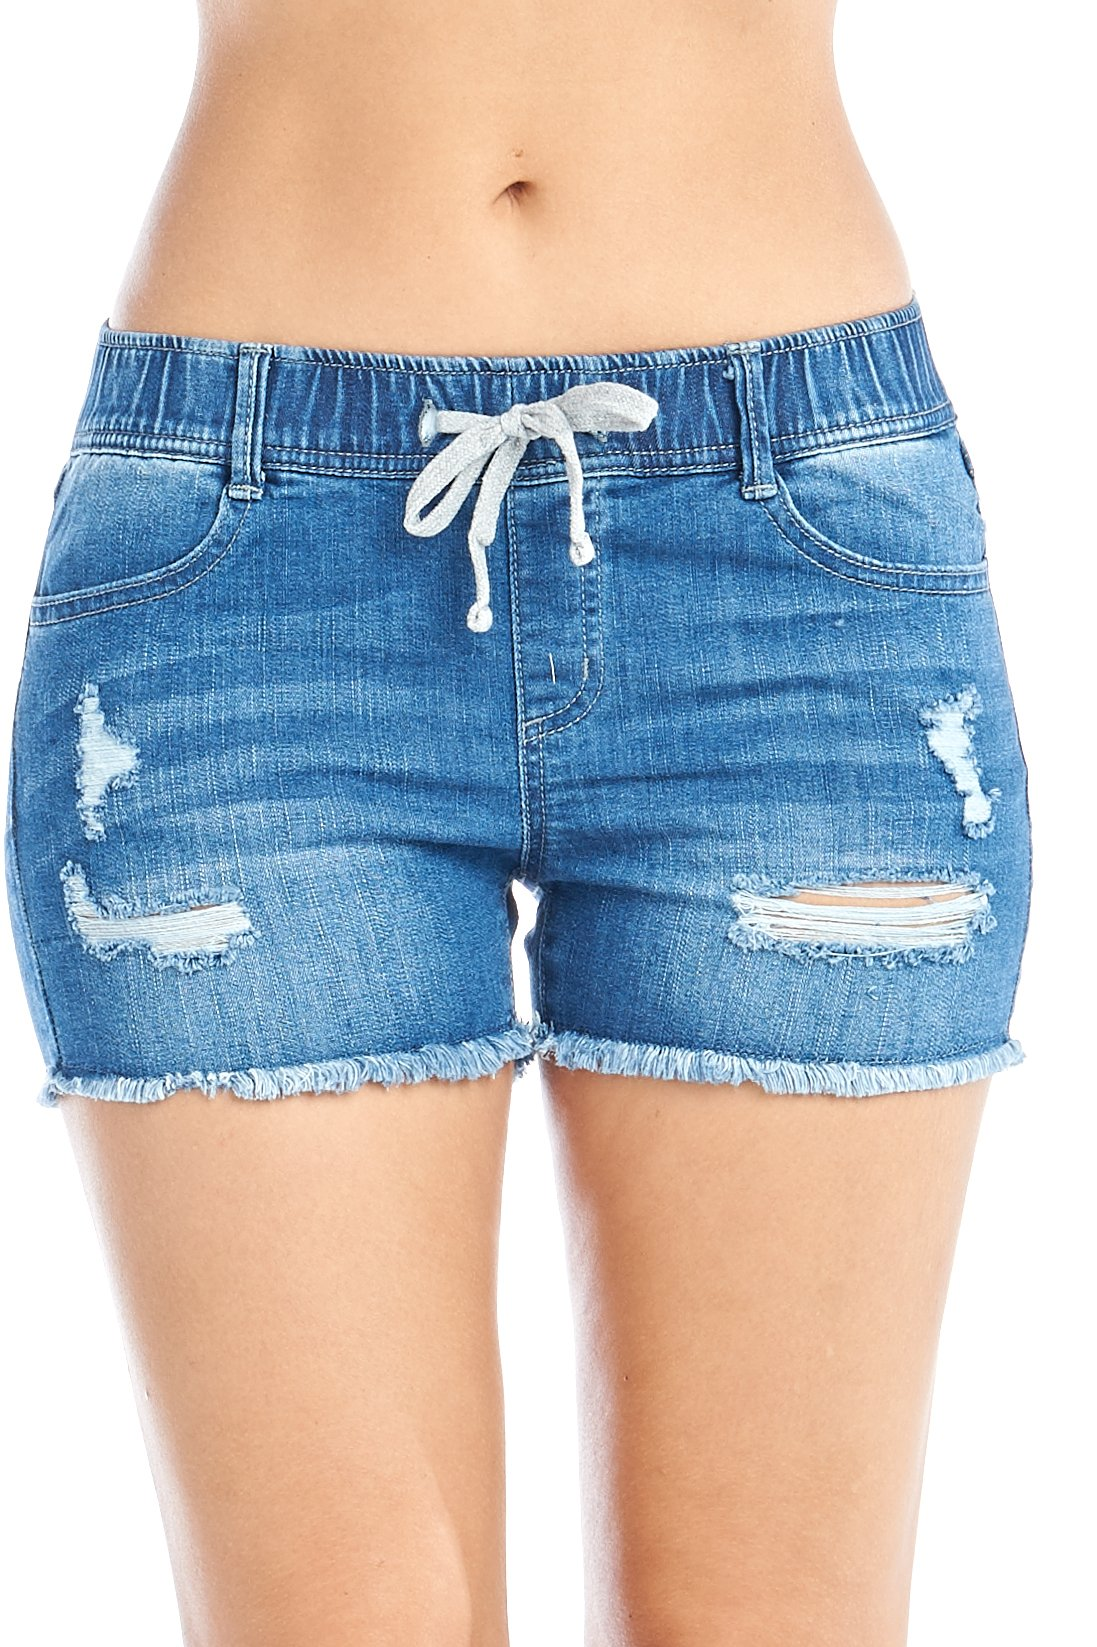 Women's High-Rise Elastic Drawstring Waist Distress Frayed Hem Stretch Denim Jean Shorts